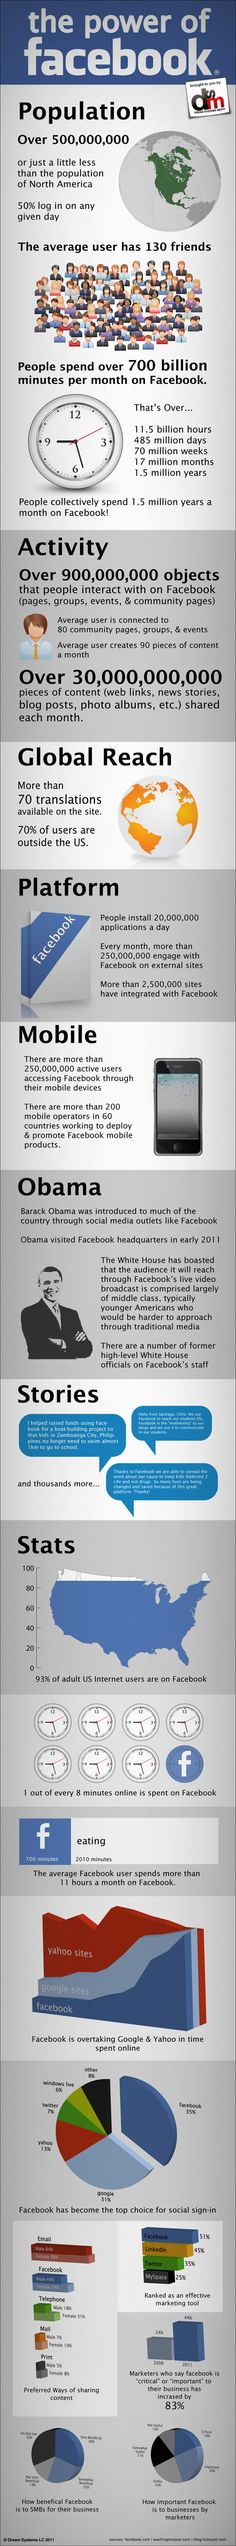 Just How Big Is Facebook Graphic by DSM